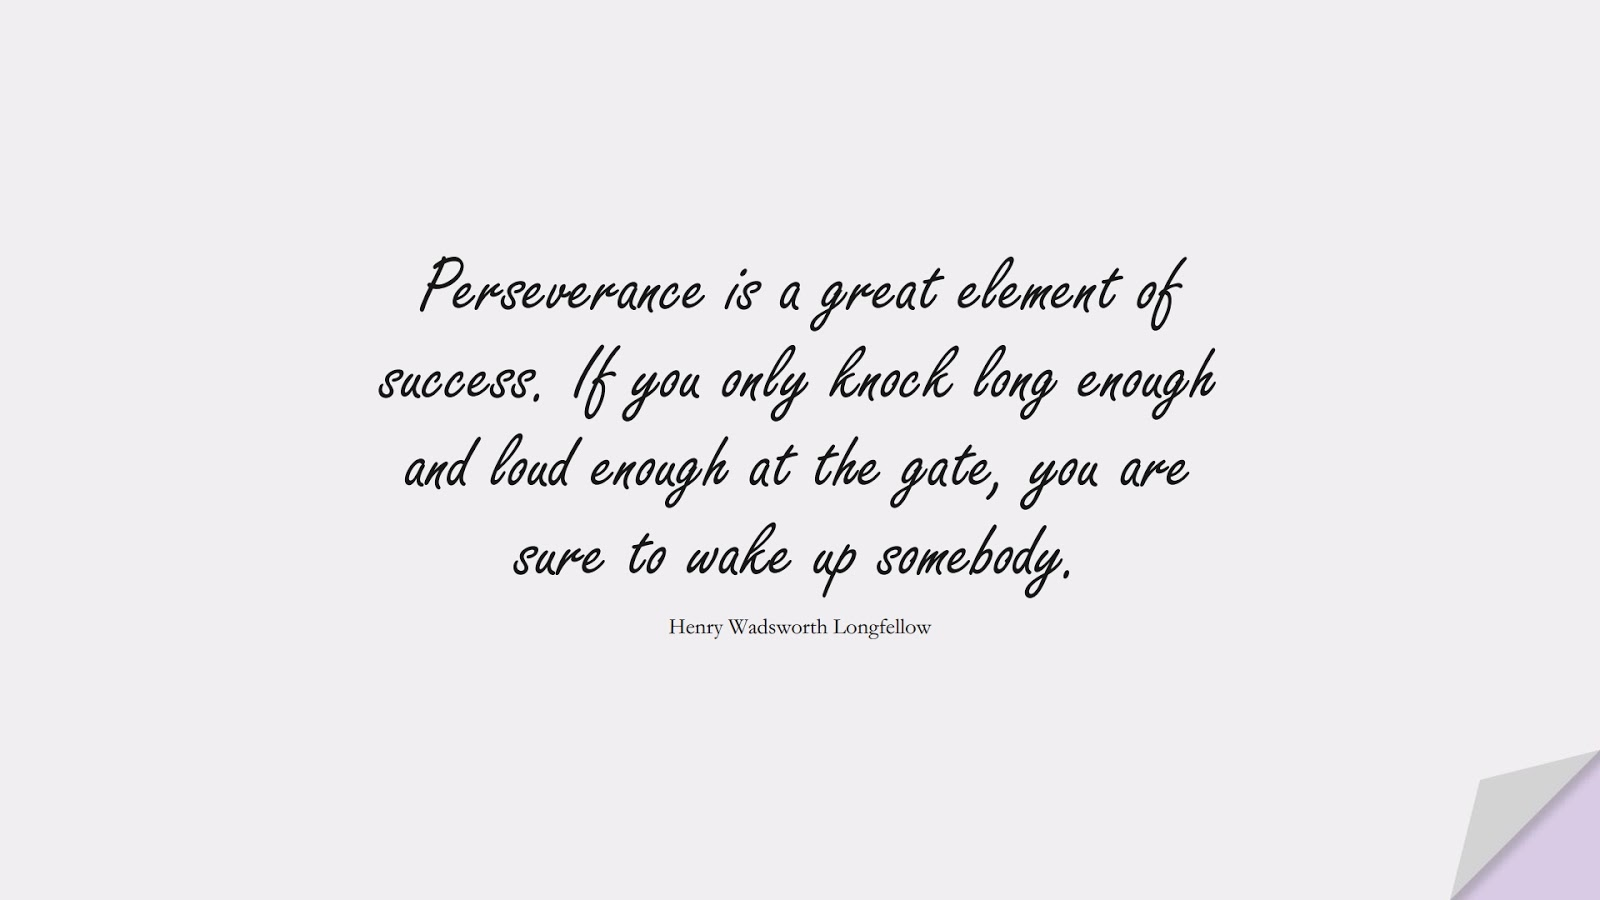 Perseverance is a great element of success. If you only knock long enough and loud enough at the gate, you are sure to wake up somebody. (Henry Wadsworth Longfellow);  #PerseveranceQuotes